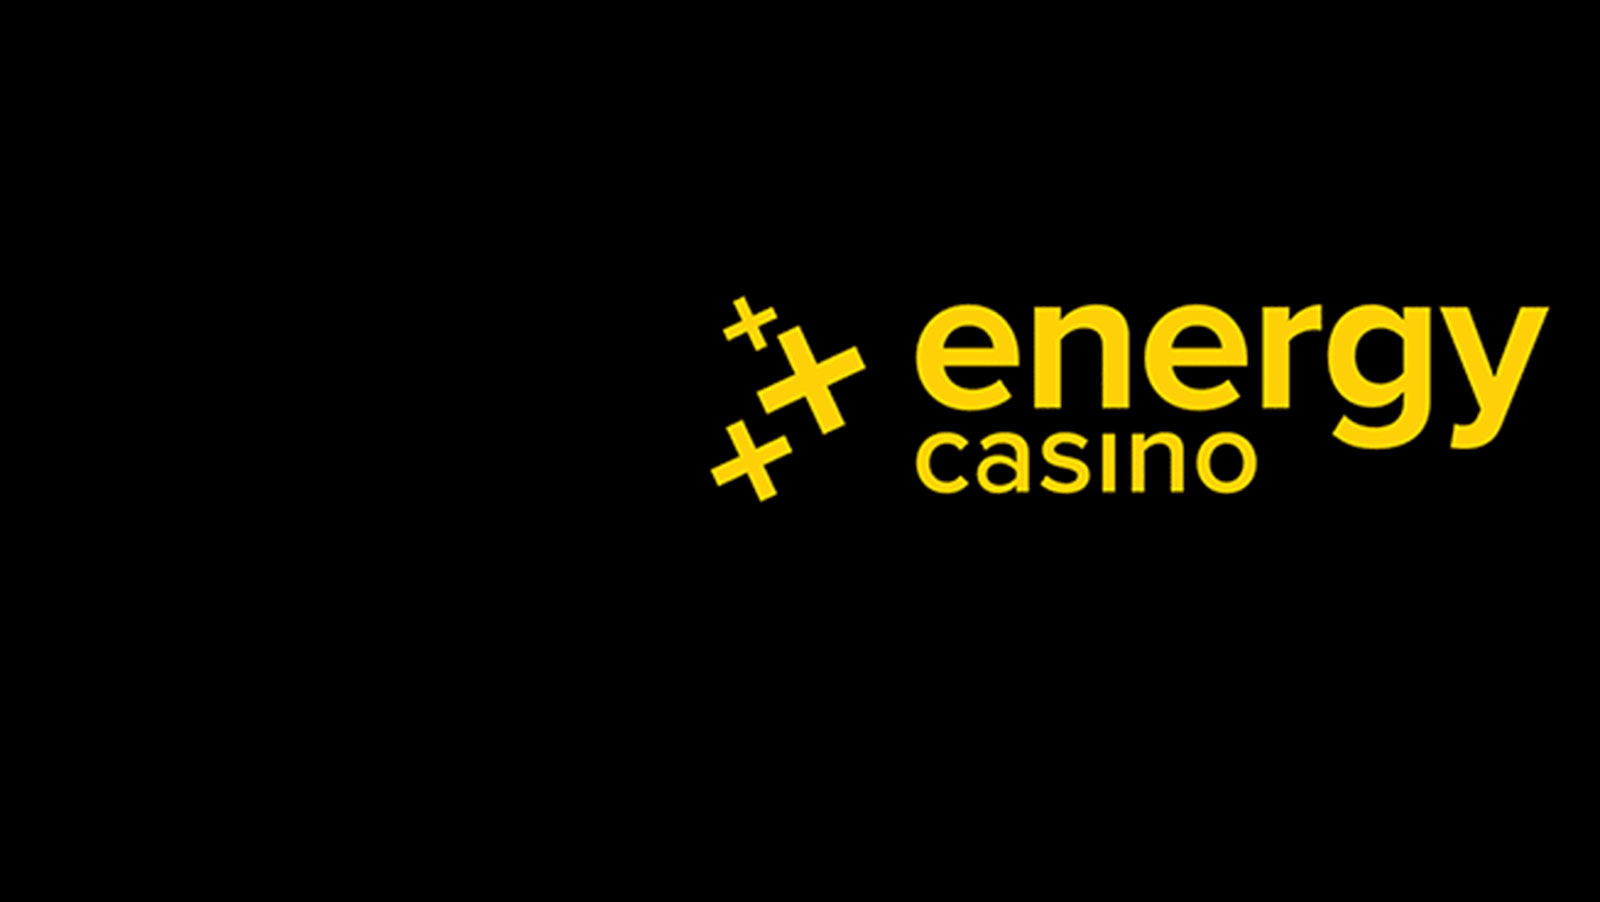 EnergyCasino expands its offering with Pariplay content